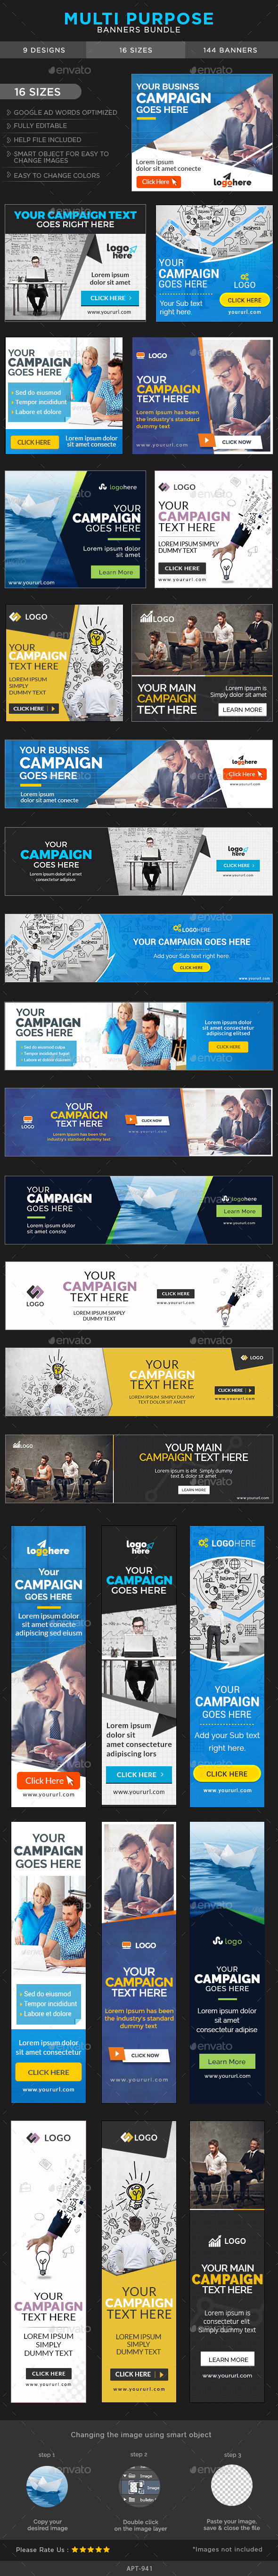 Multi Purpose Banners Bundle - 9 Sets - Banners & Ads Web Elements